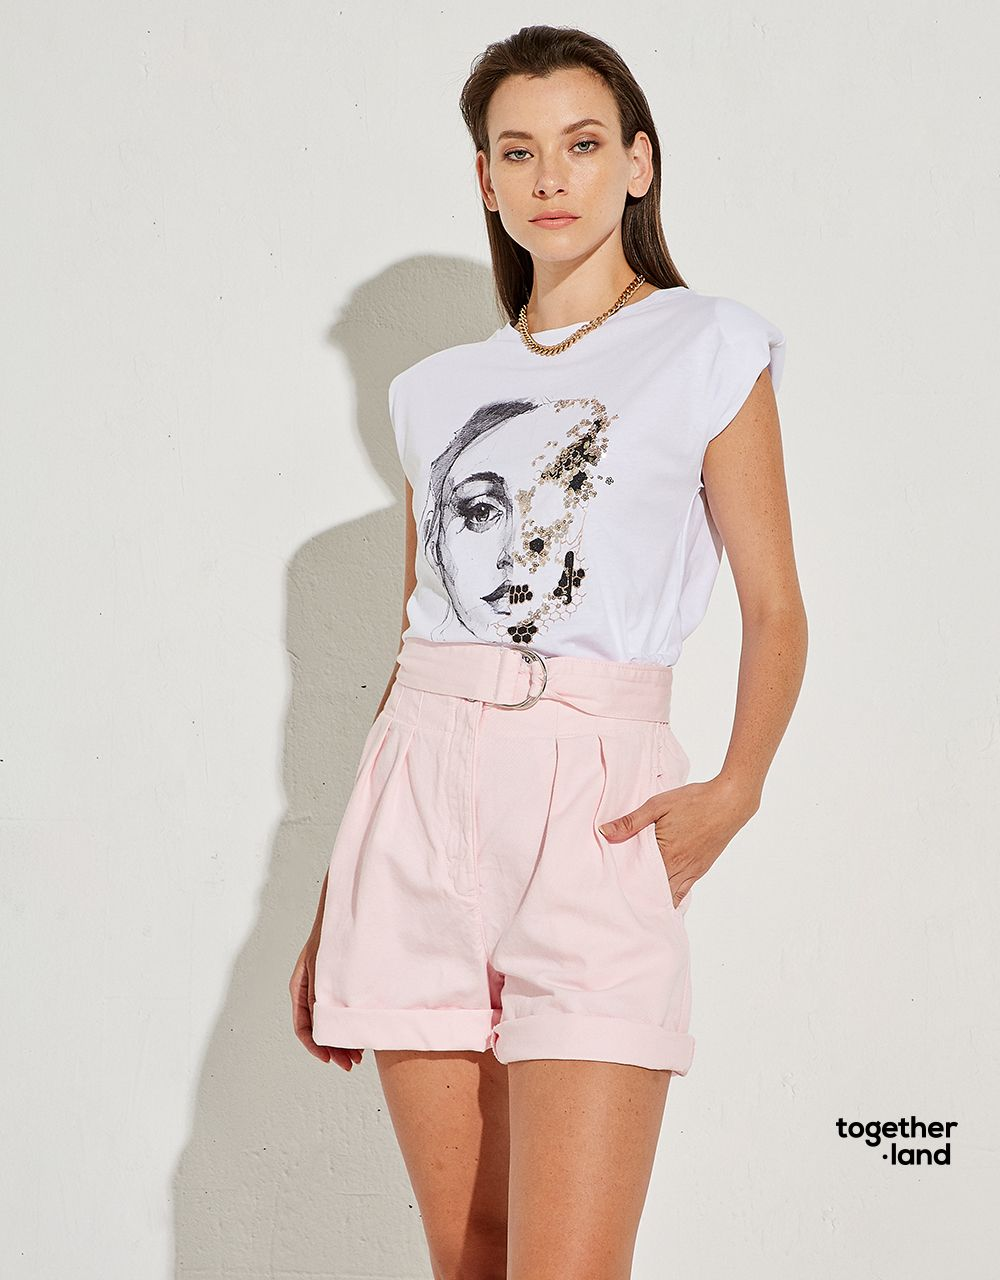 T-SHIRT WITH SEQUINS - TOGETHERLAND